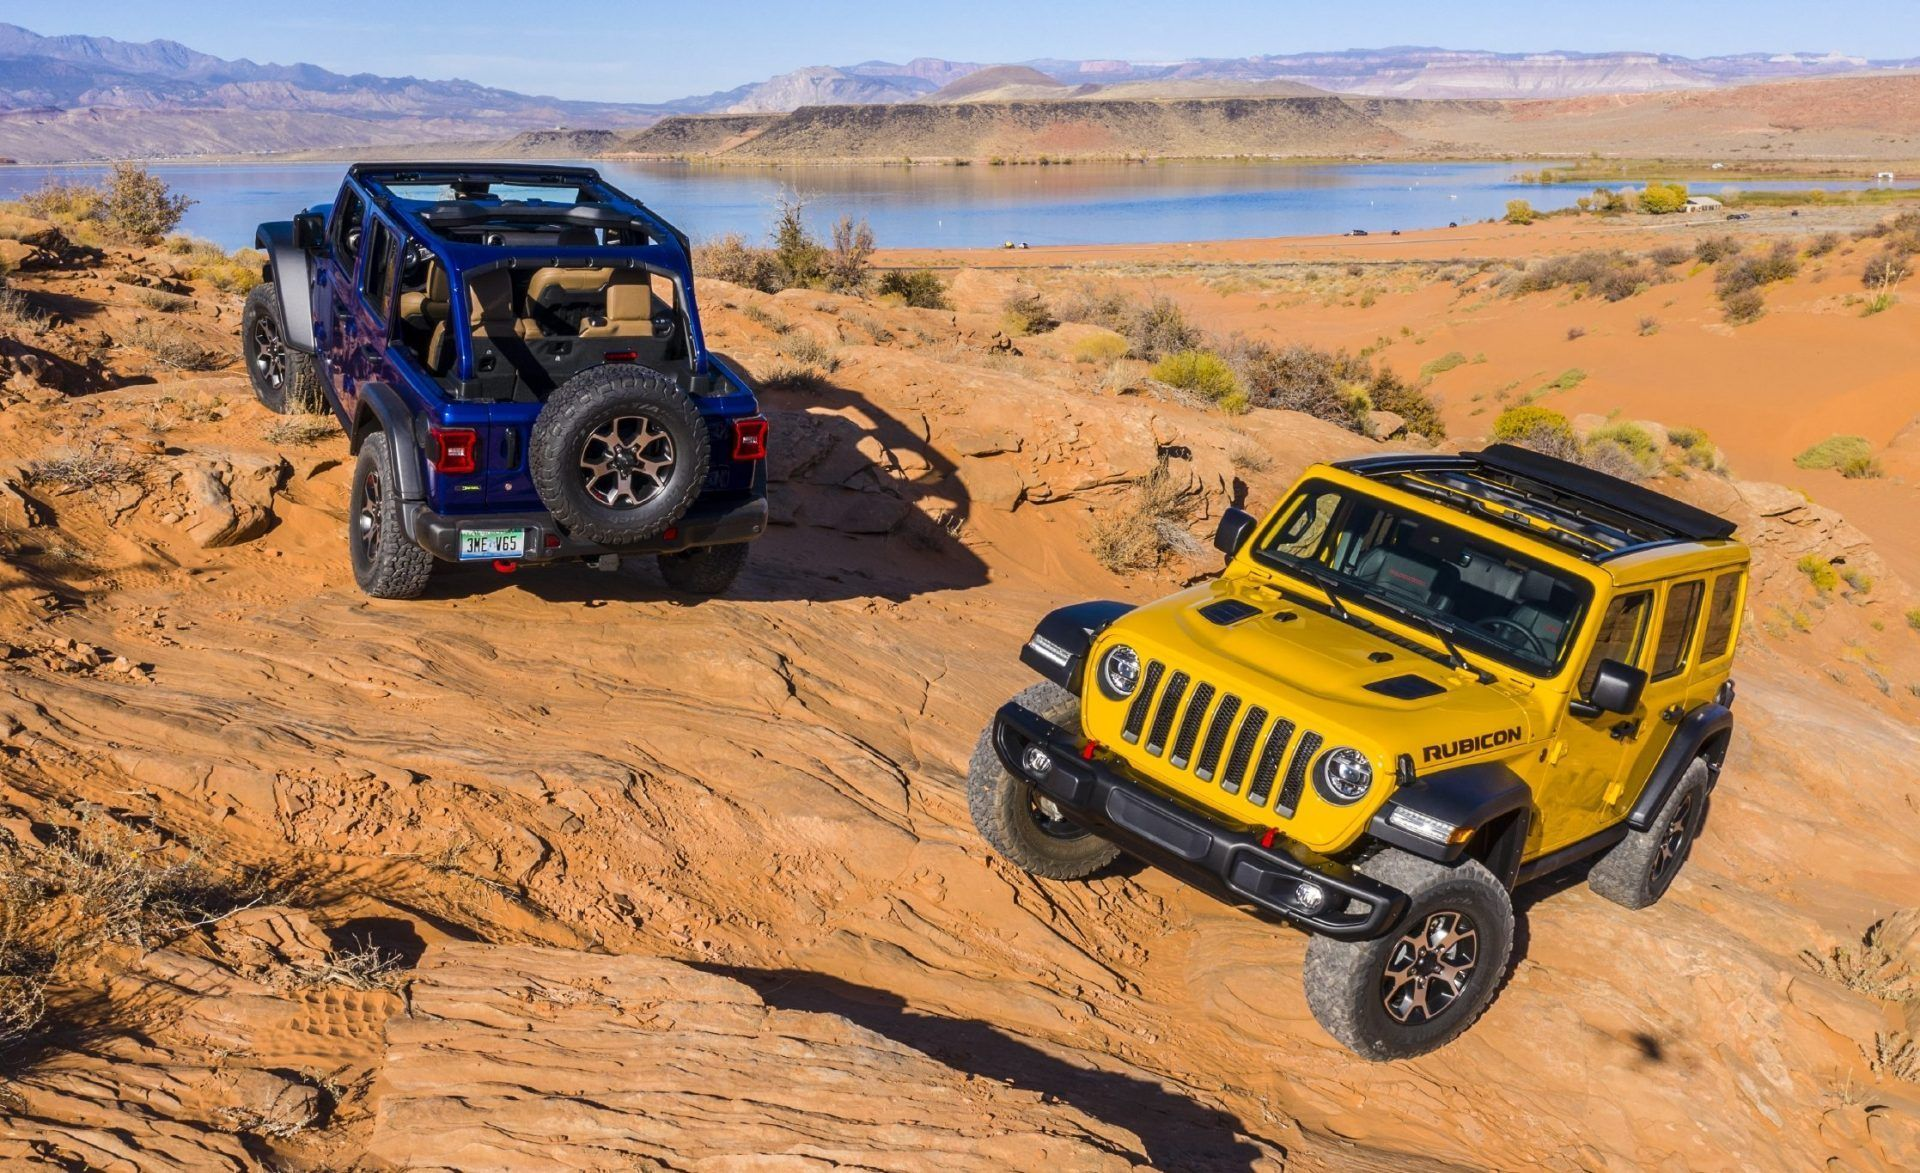 Get Ready For The 2020 Jeep Wrangler 3 0 Liter Ecodiesel Jeep Wrangler Jeep Wrangler Engine Jeep